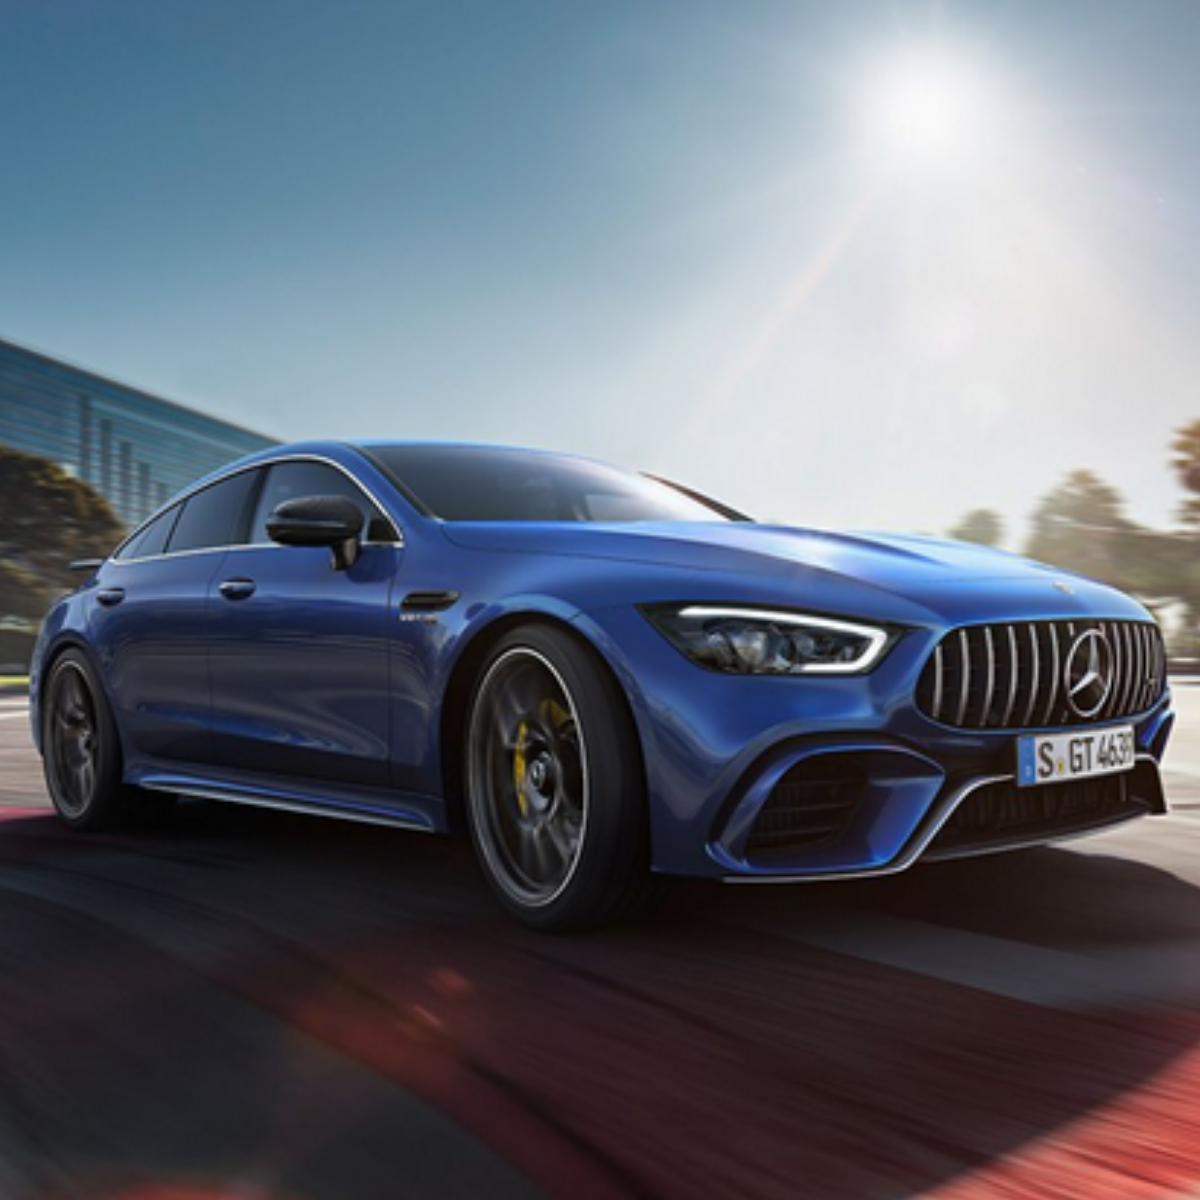 Mercedes Benz AMG GT Model: Power, Mileage, Safety, Colors